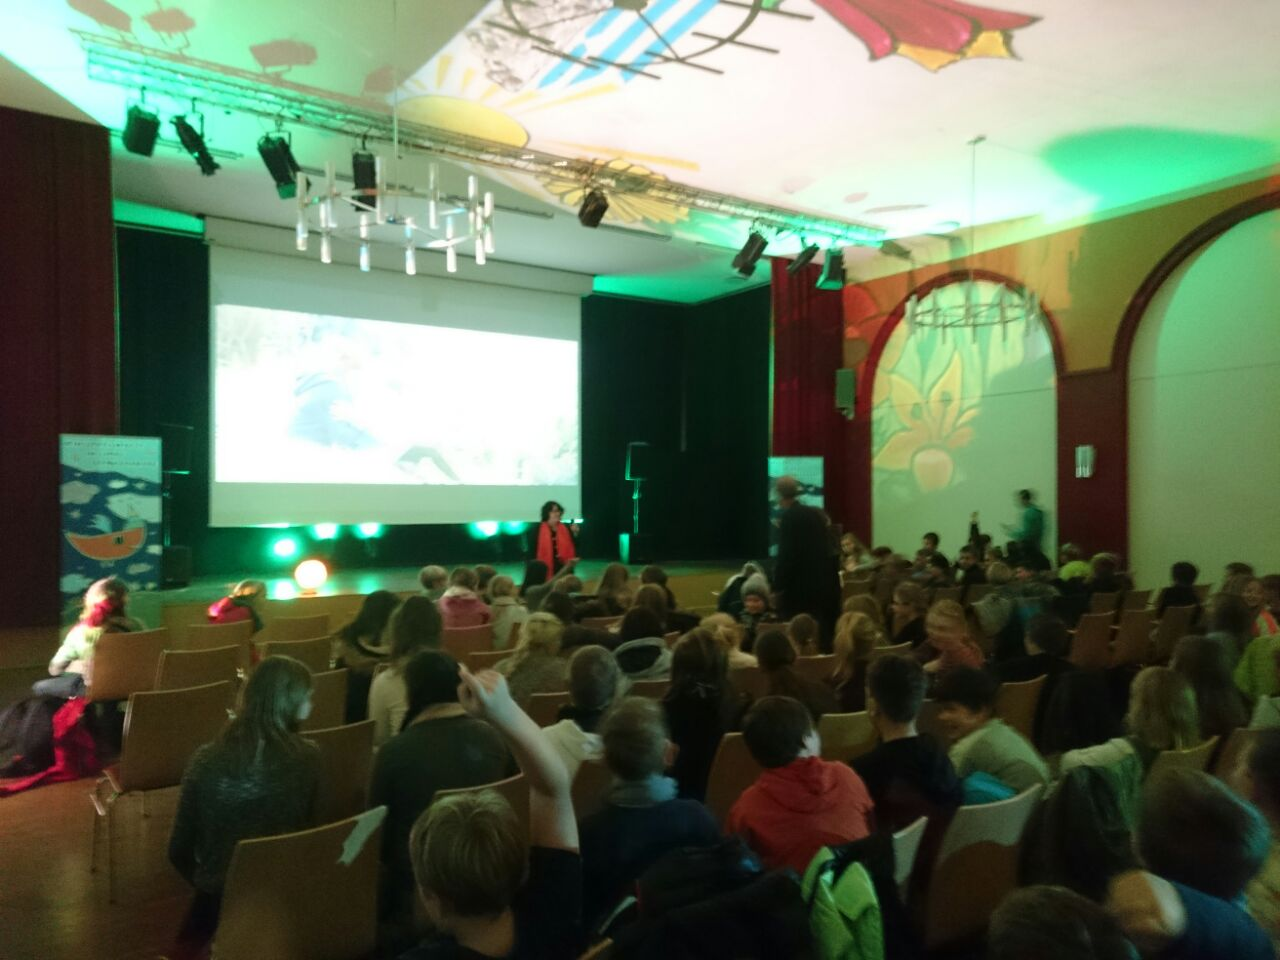 Kinderflmfest in Wandlitz vom 13. - 18. November 2017